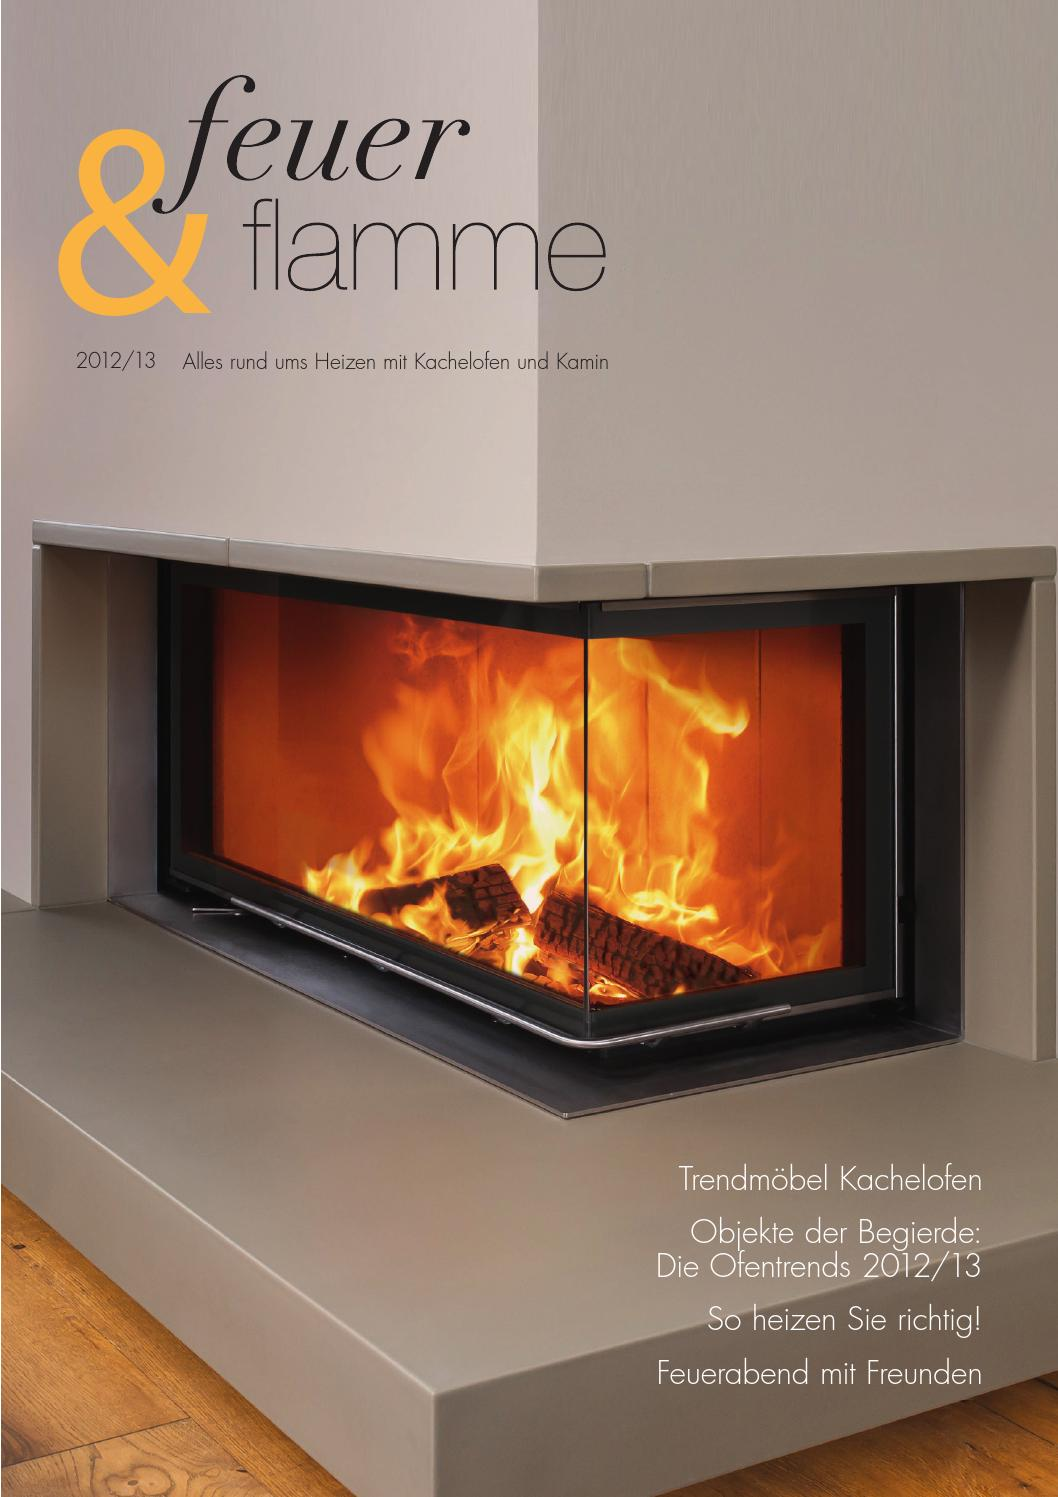 2 öfen An Einem Kamin Feuer And Flamme By Tom Seen Issuu